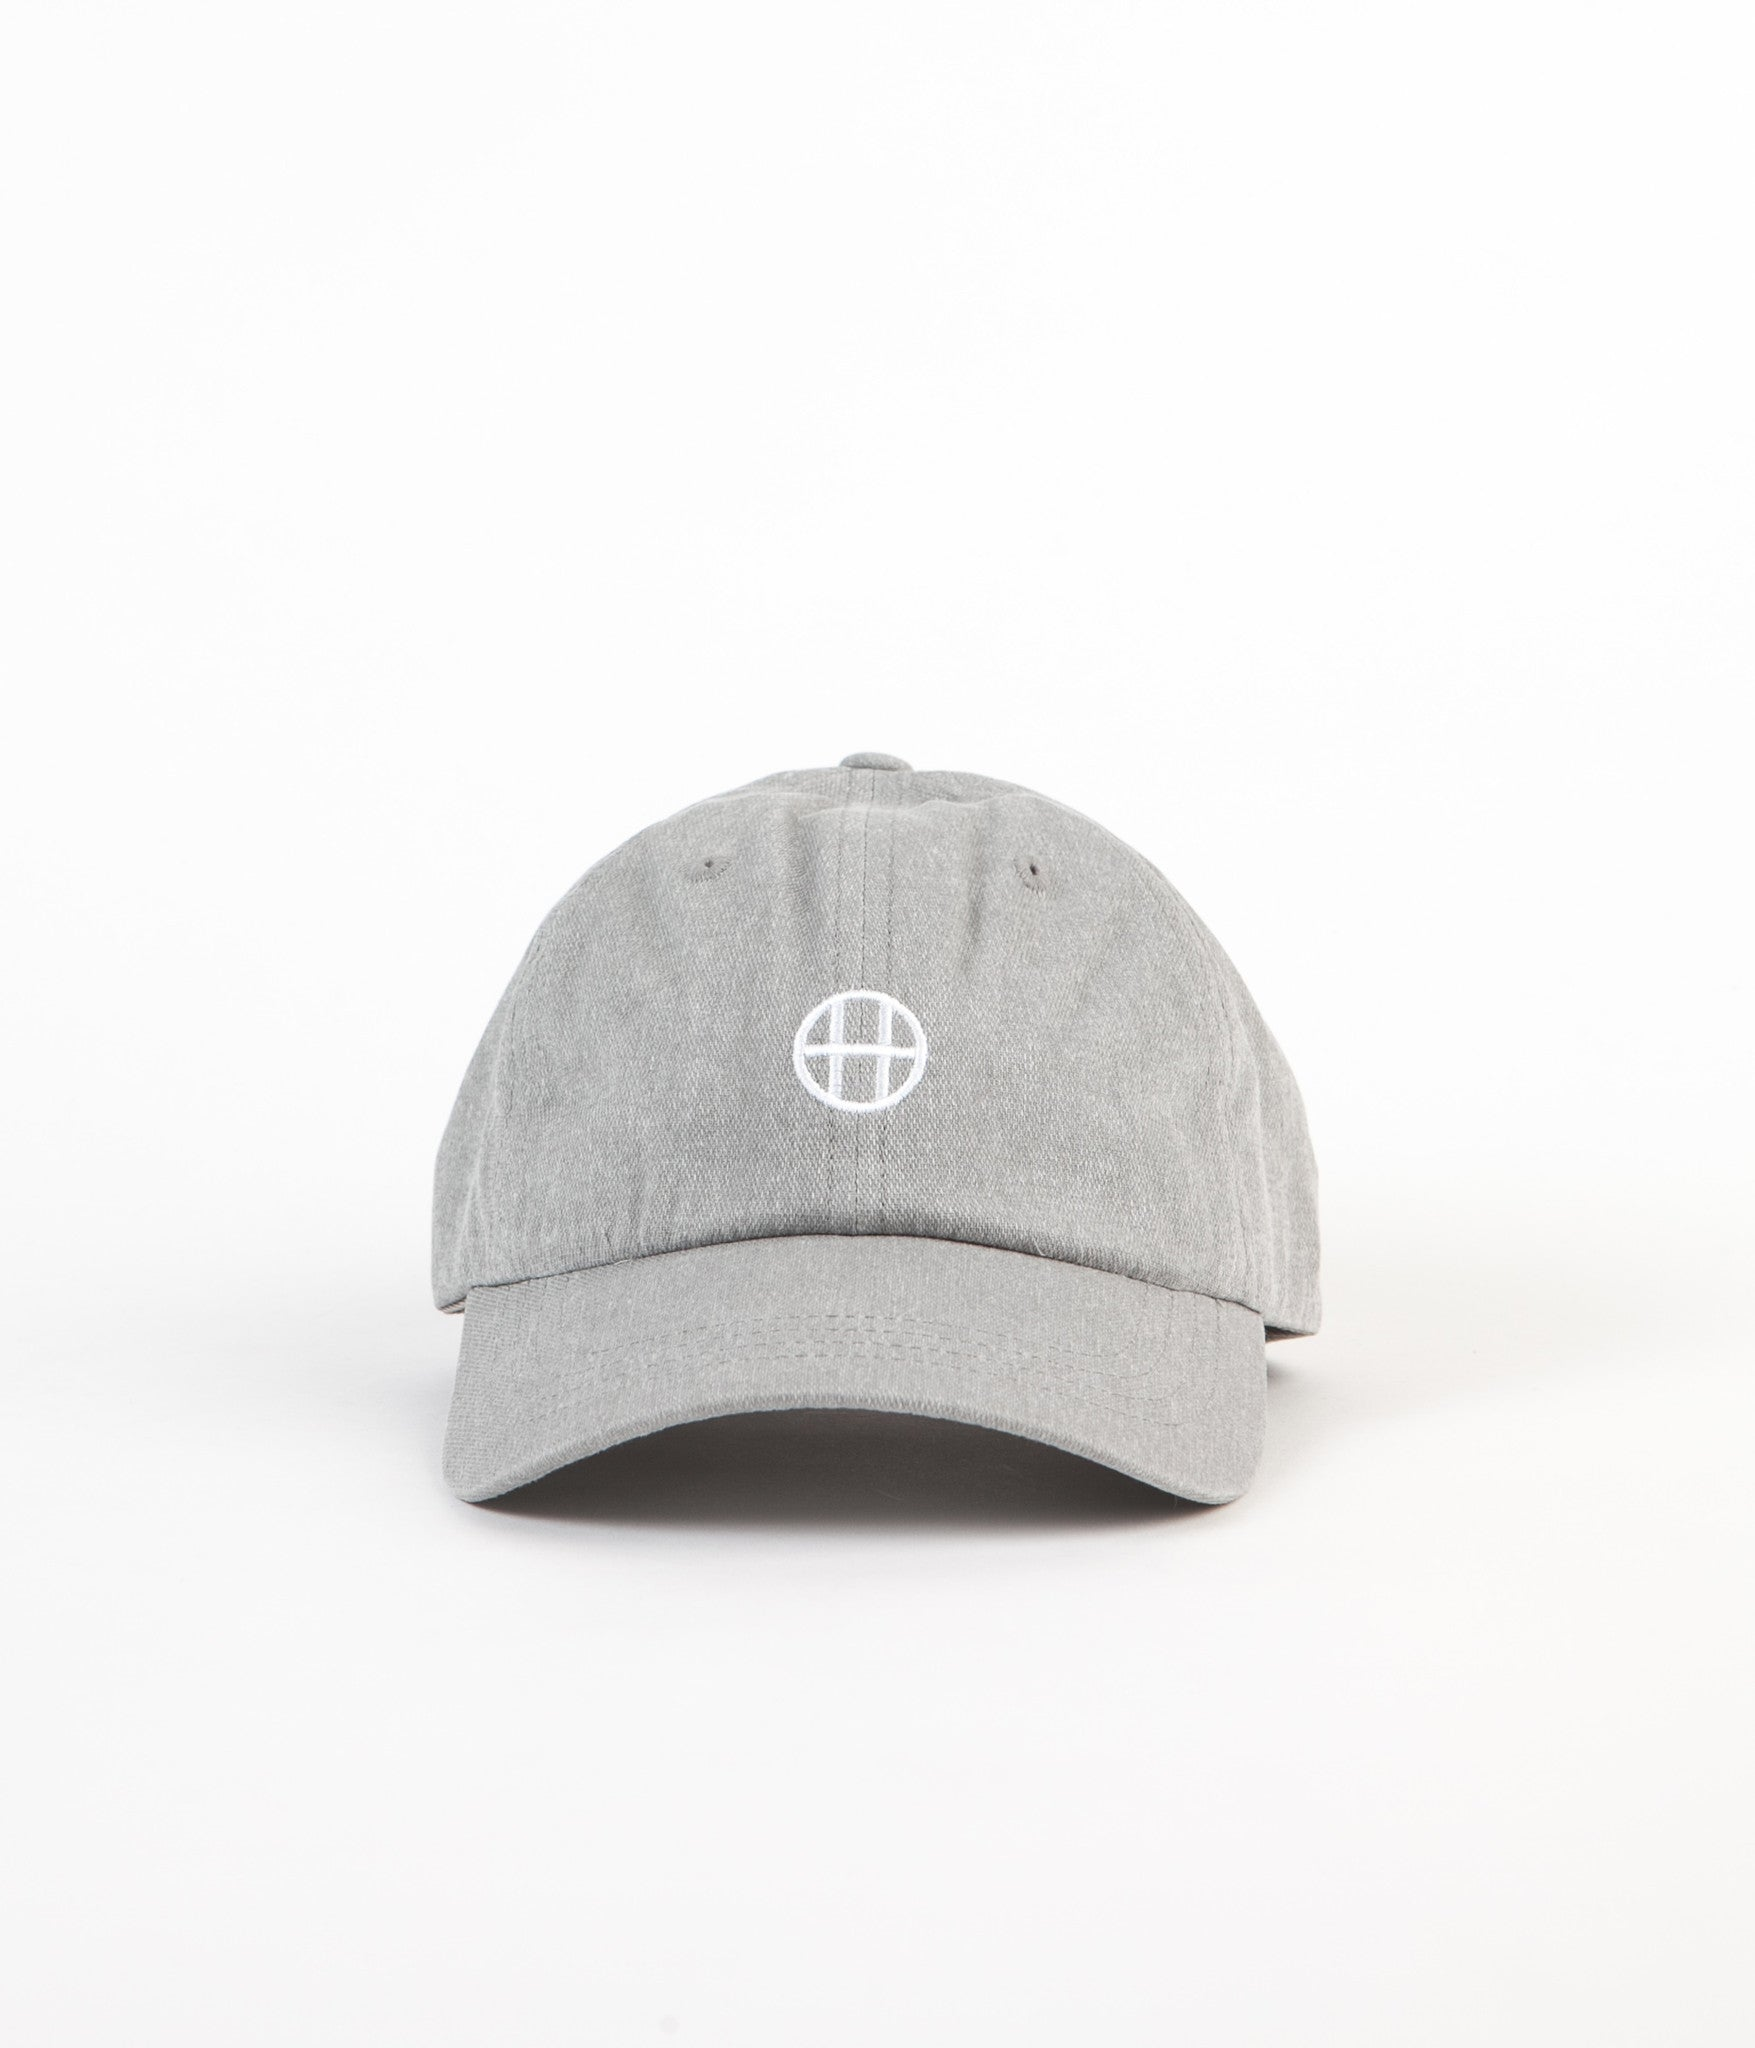 HUF Circle H 6 Panel Cap - Grey Heather